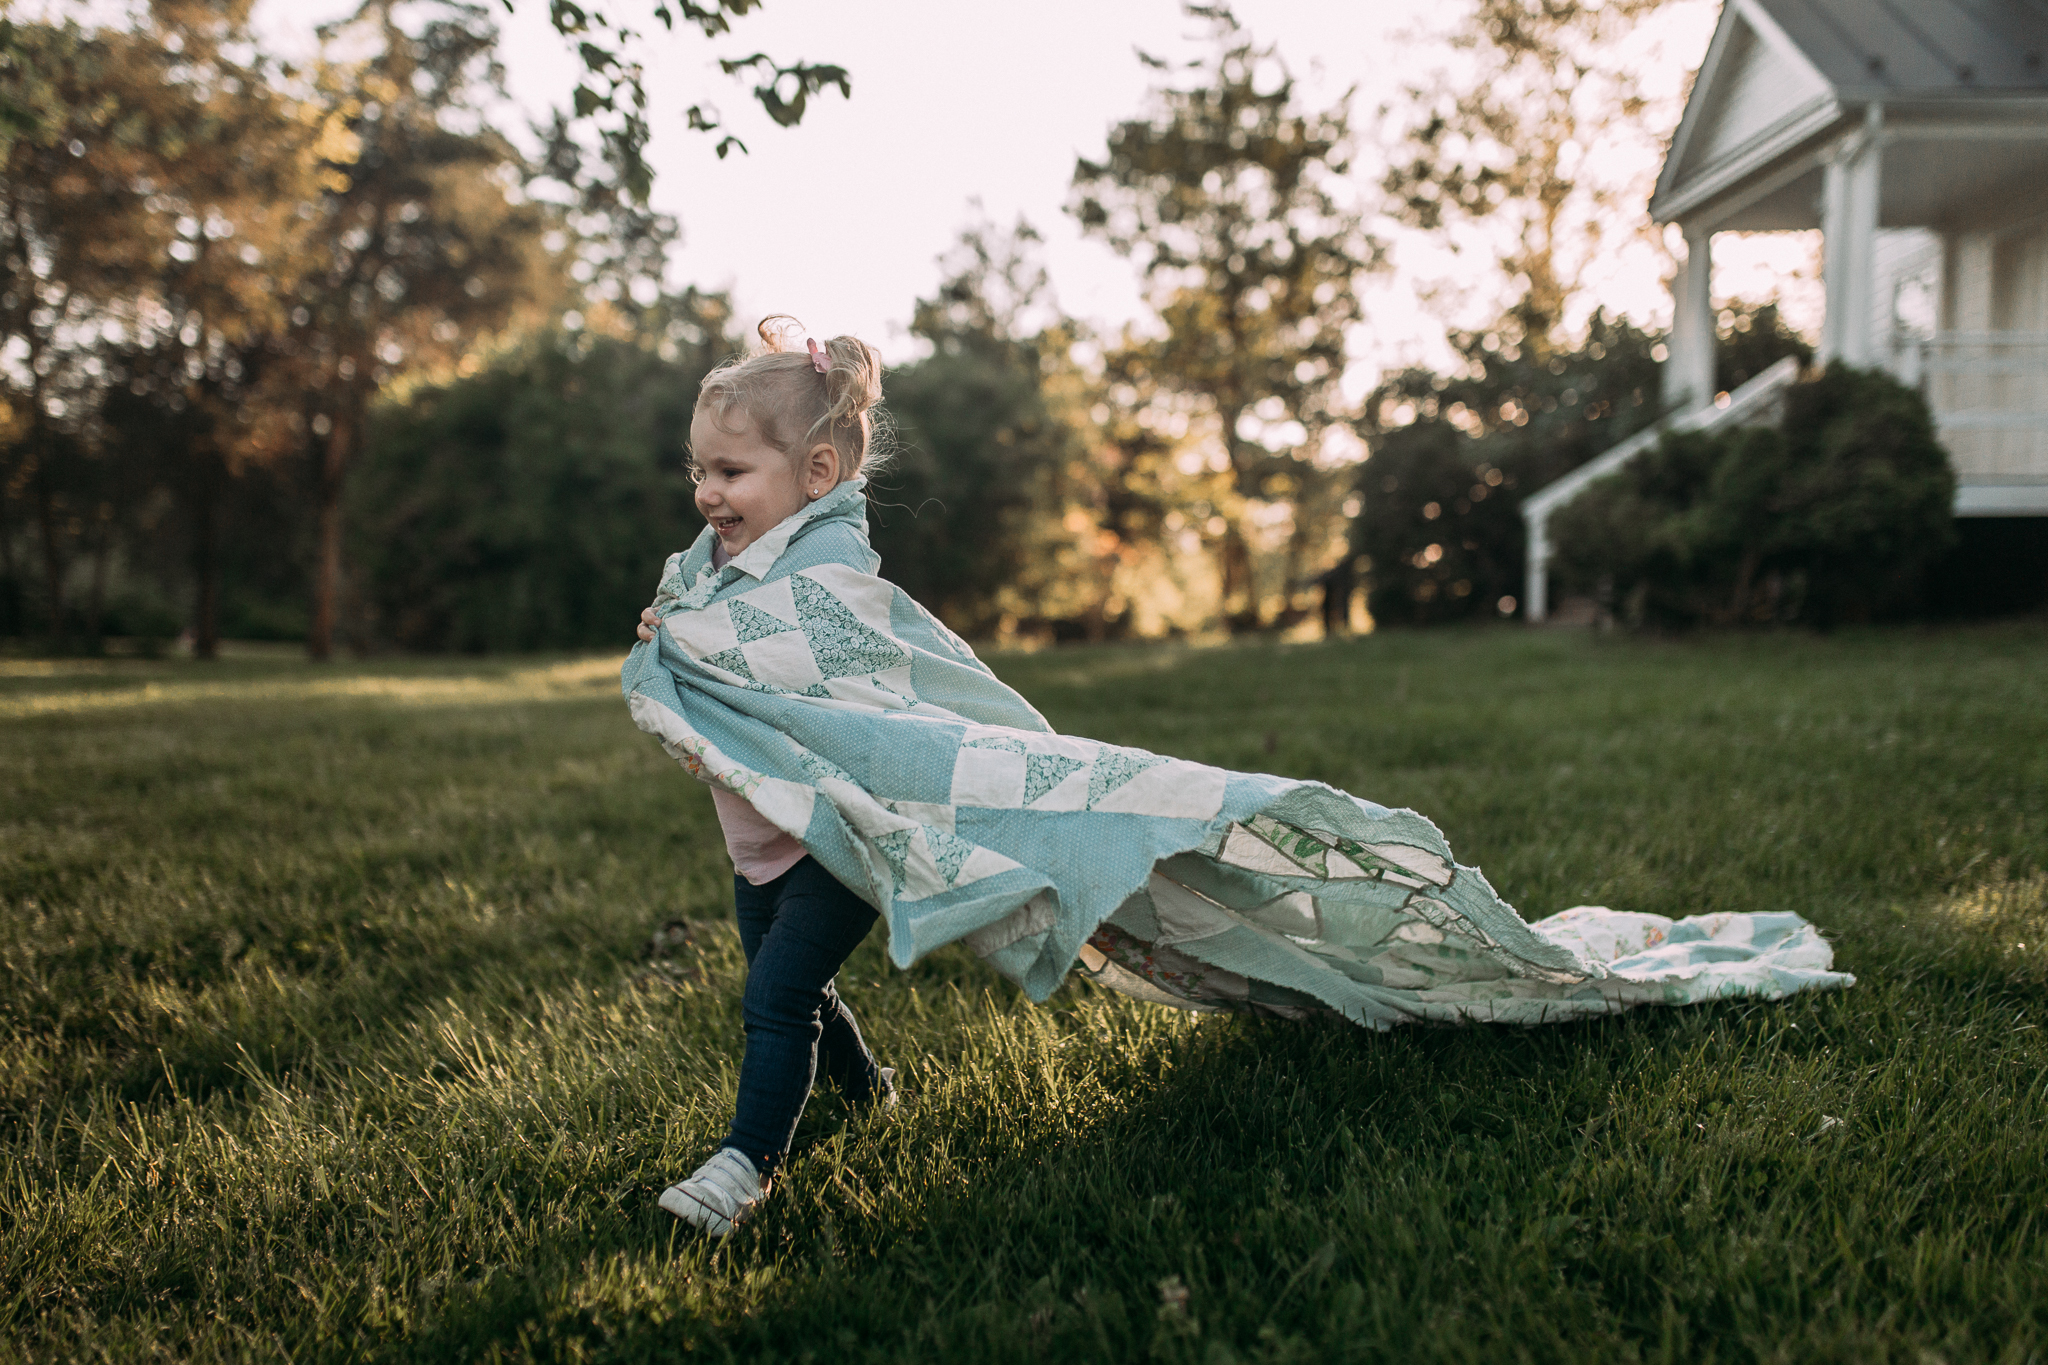 toddler girl cape quilt blanket maternity motherhood family lifestyle documentary Claude Moore Park Sterling Loudoun Virginia Golden Hour Sunset spring Marti Austin Photography